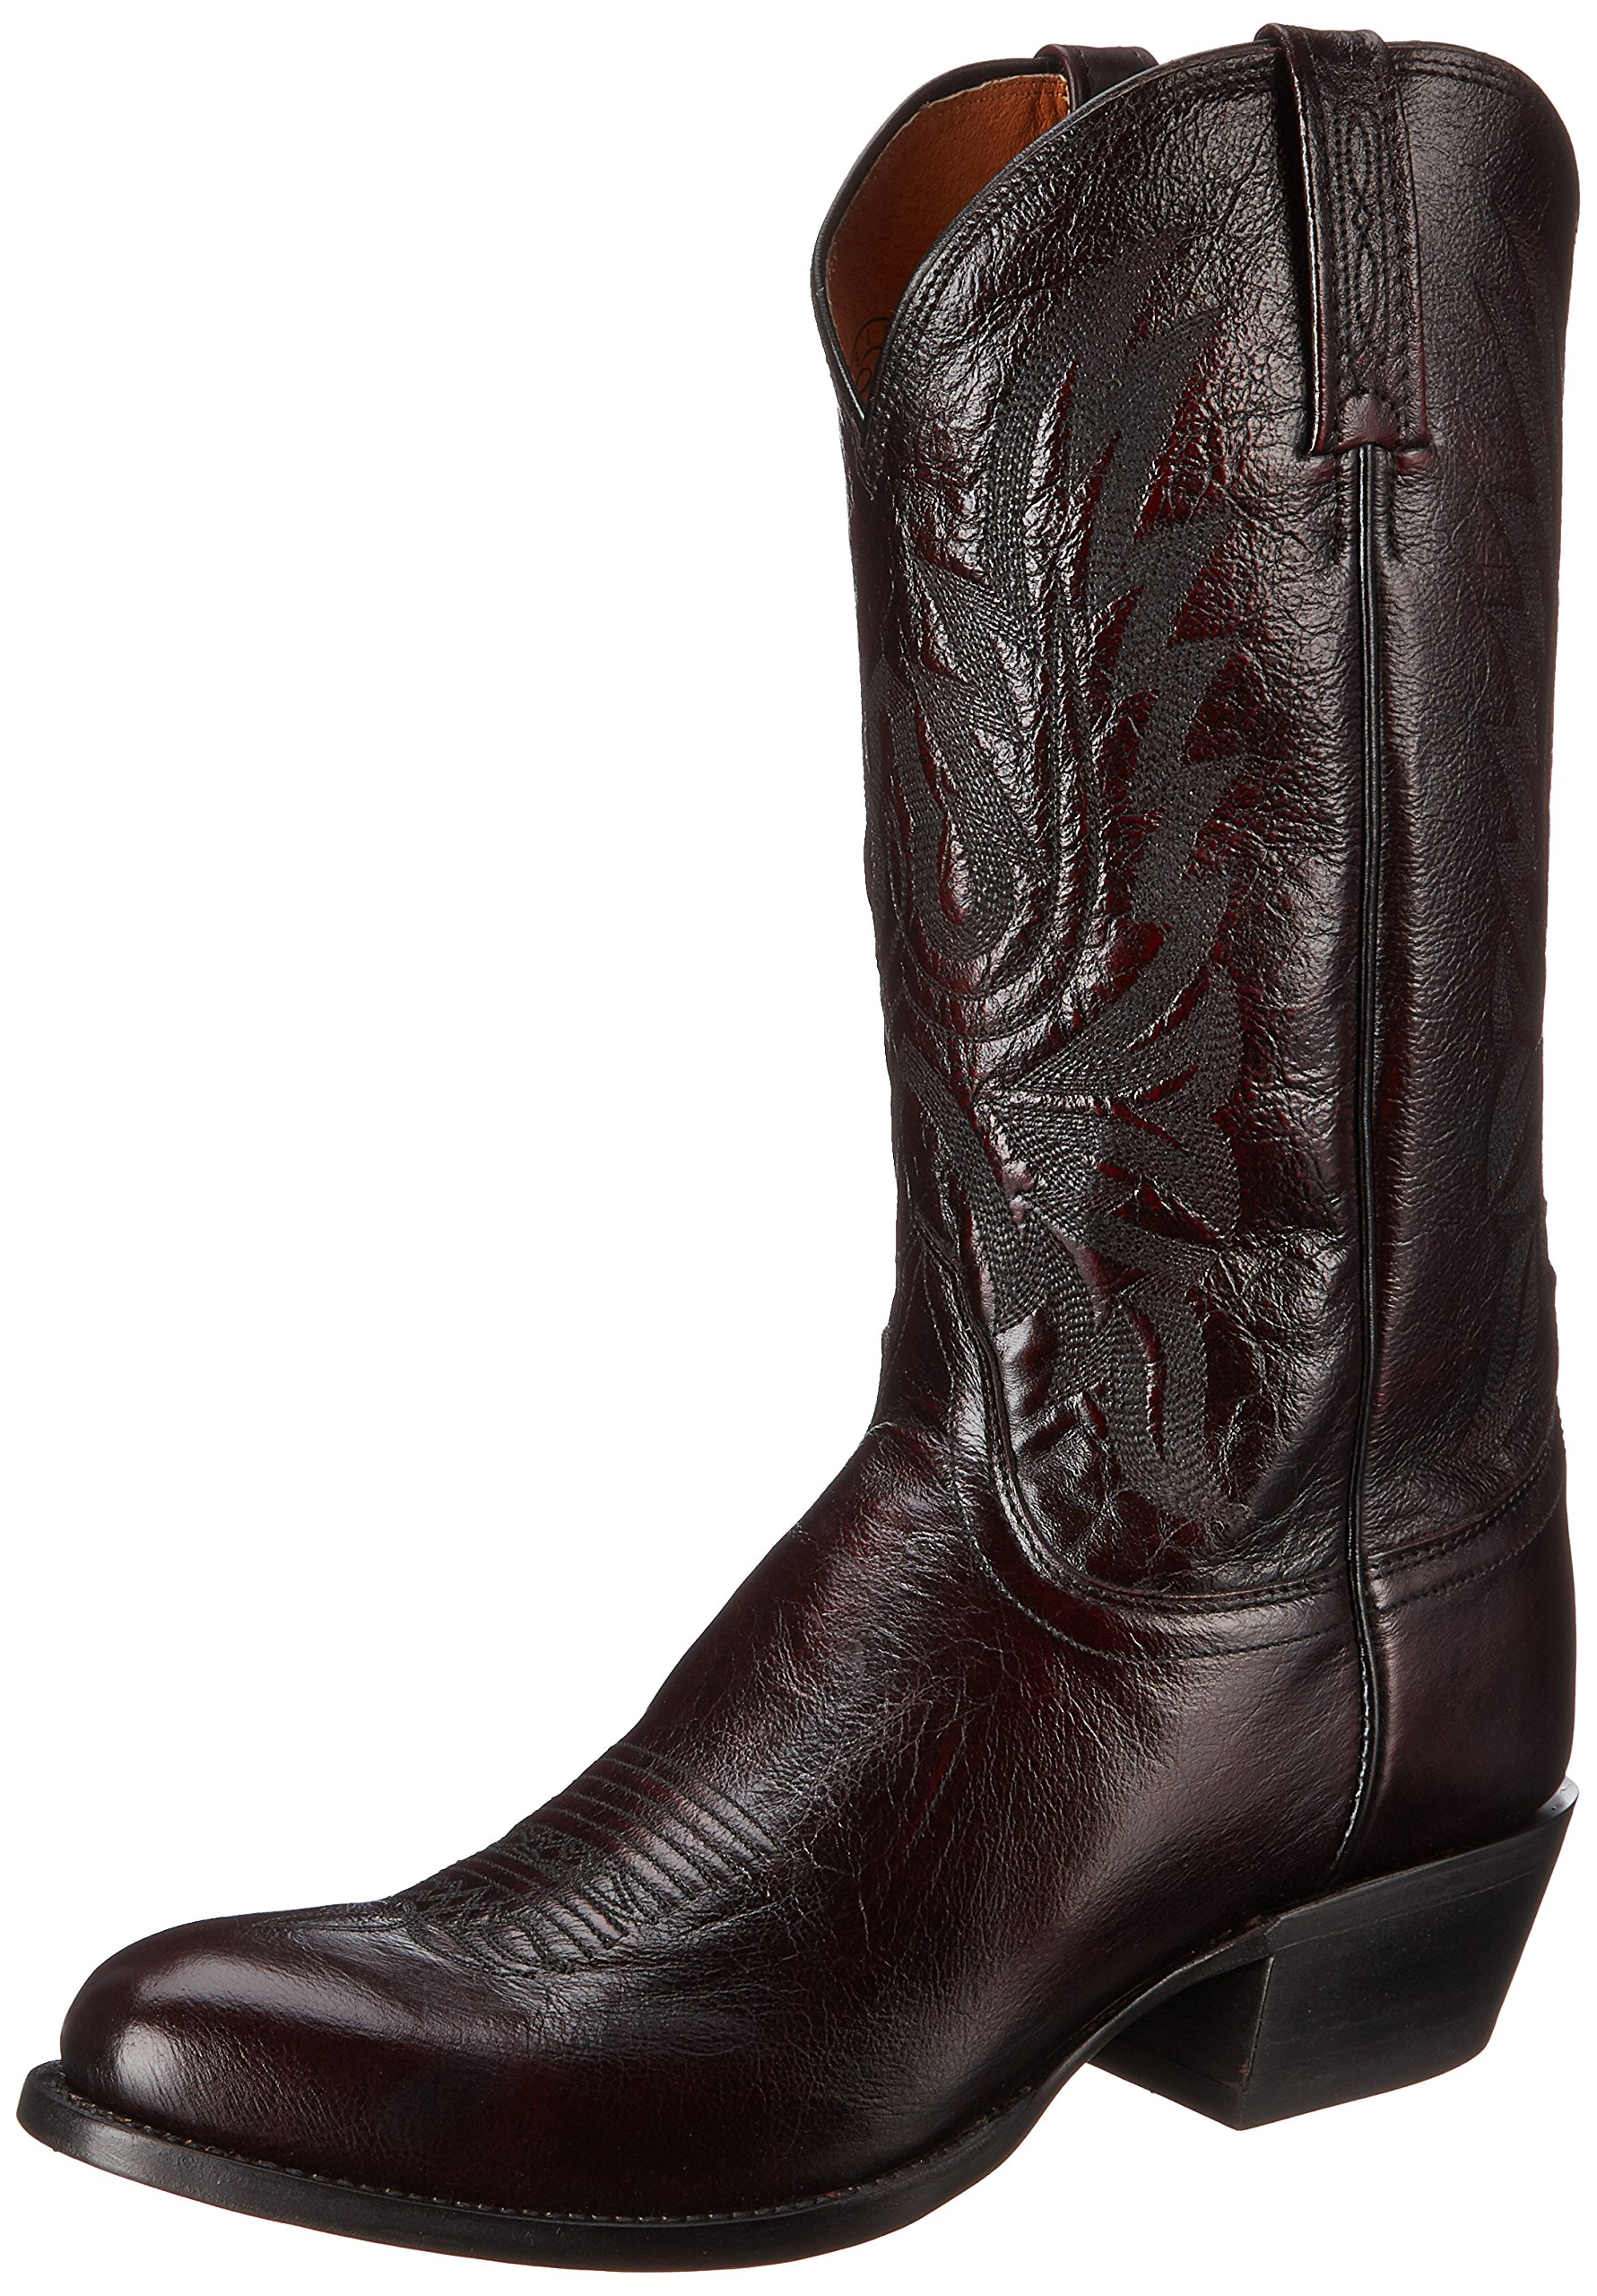 Lucchese Classics Men's Carson-bc Lonestar Calf Cowboy Riding Boot, Black Cherry, 9.5 D US